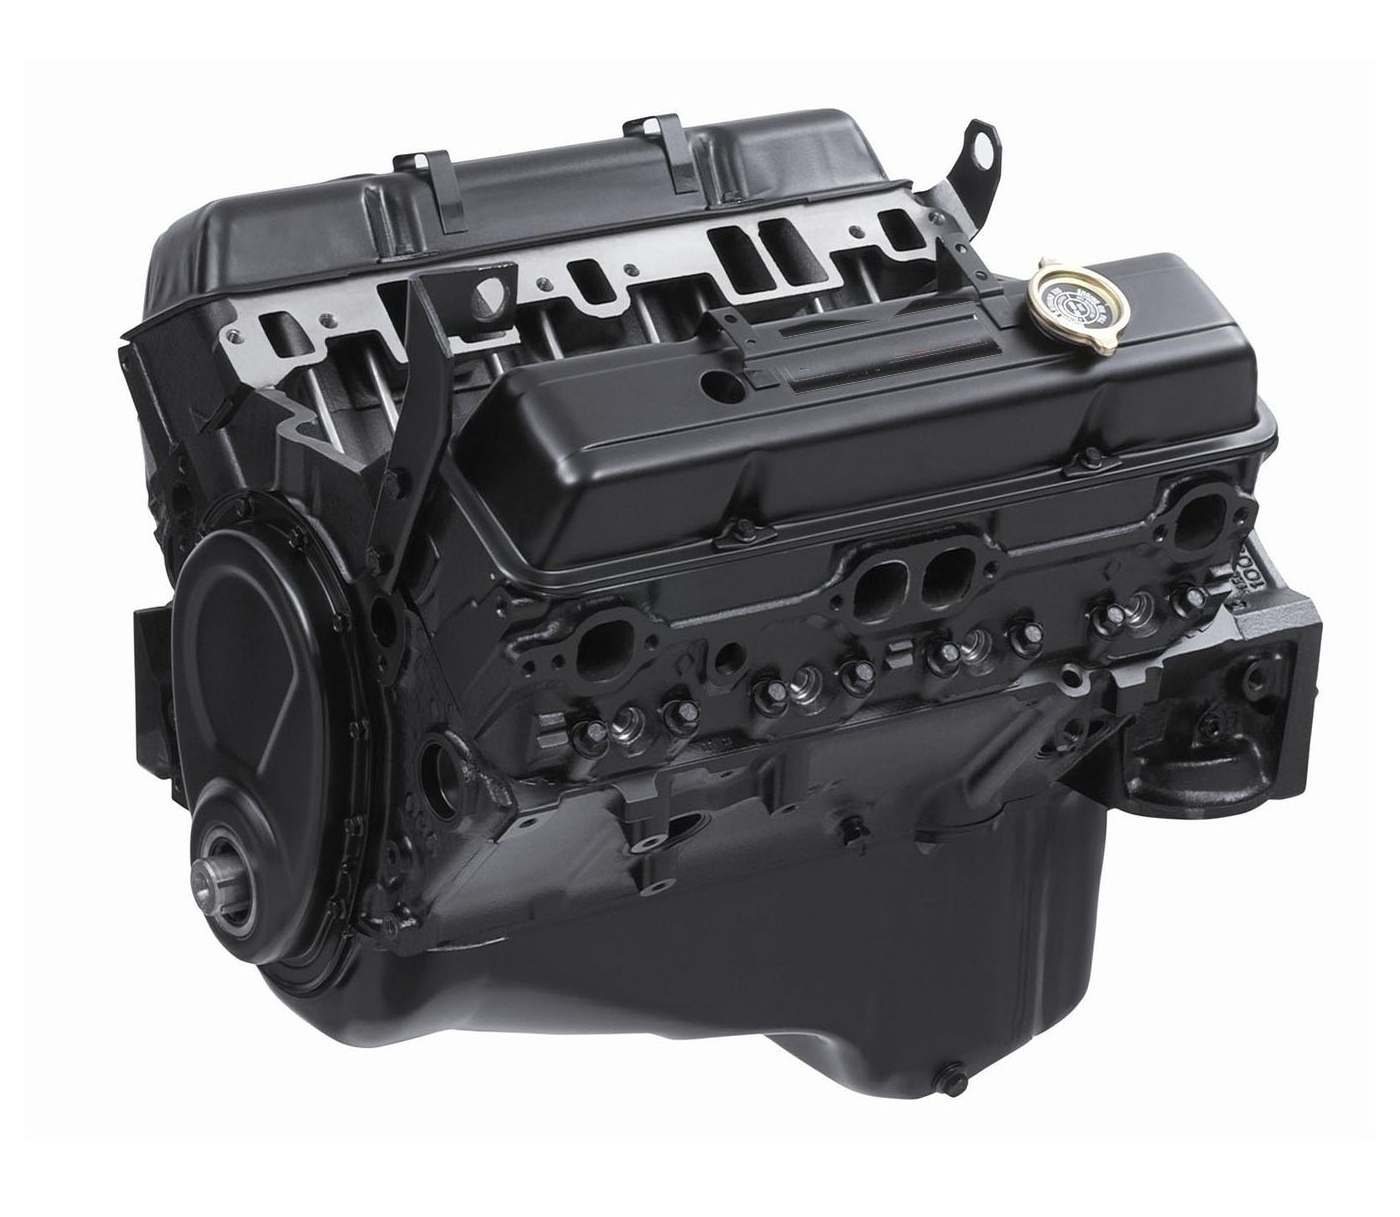 5.7L Reman Long Block Engine For Chevrolet G20